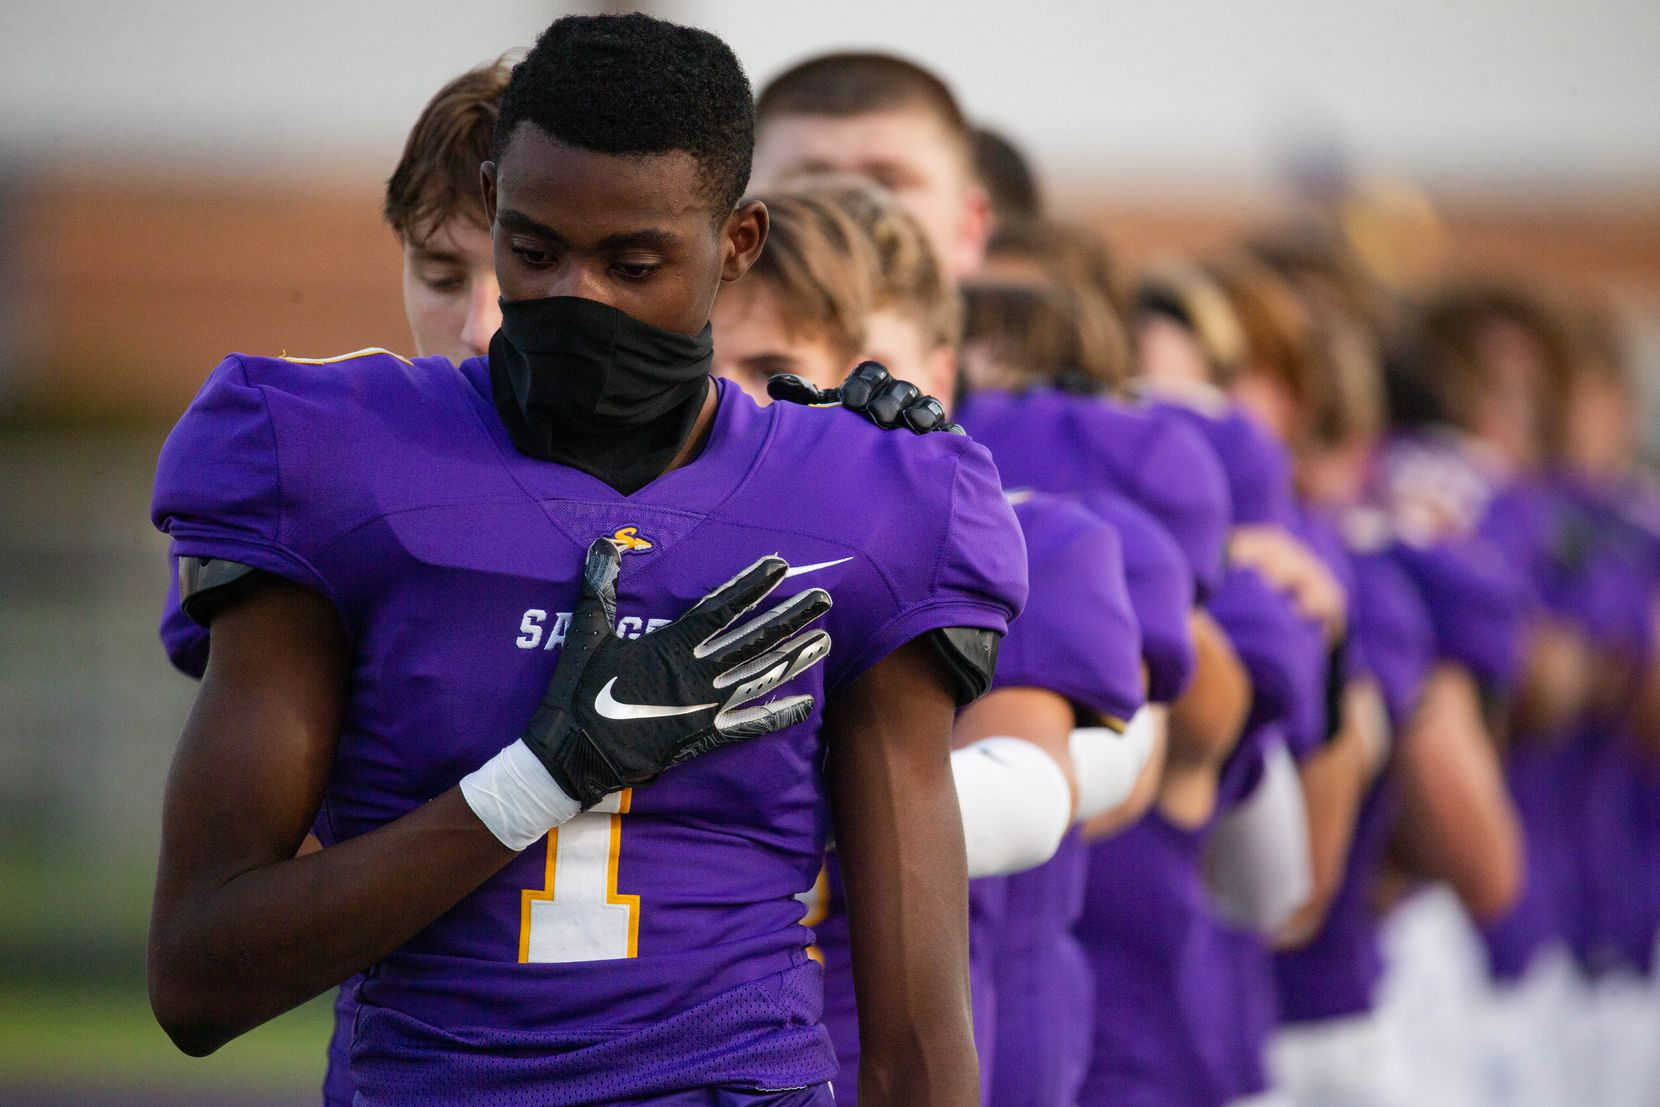 Sanger High School player Josh Henry wears a neck gaiter  during the national anthem before the start of a game against Lake Worth High School on Sept. 4, 2020 in Sanger. Sanger leads 26-14 at halftime. (Juan Figueroa/ The Dallas Morning News)